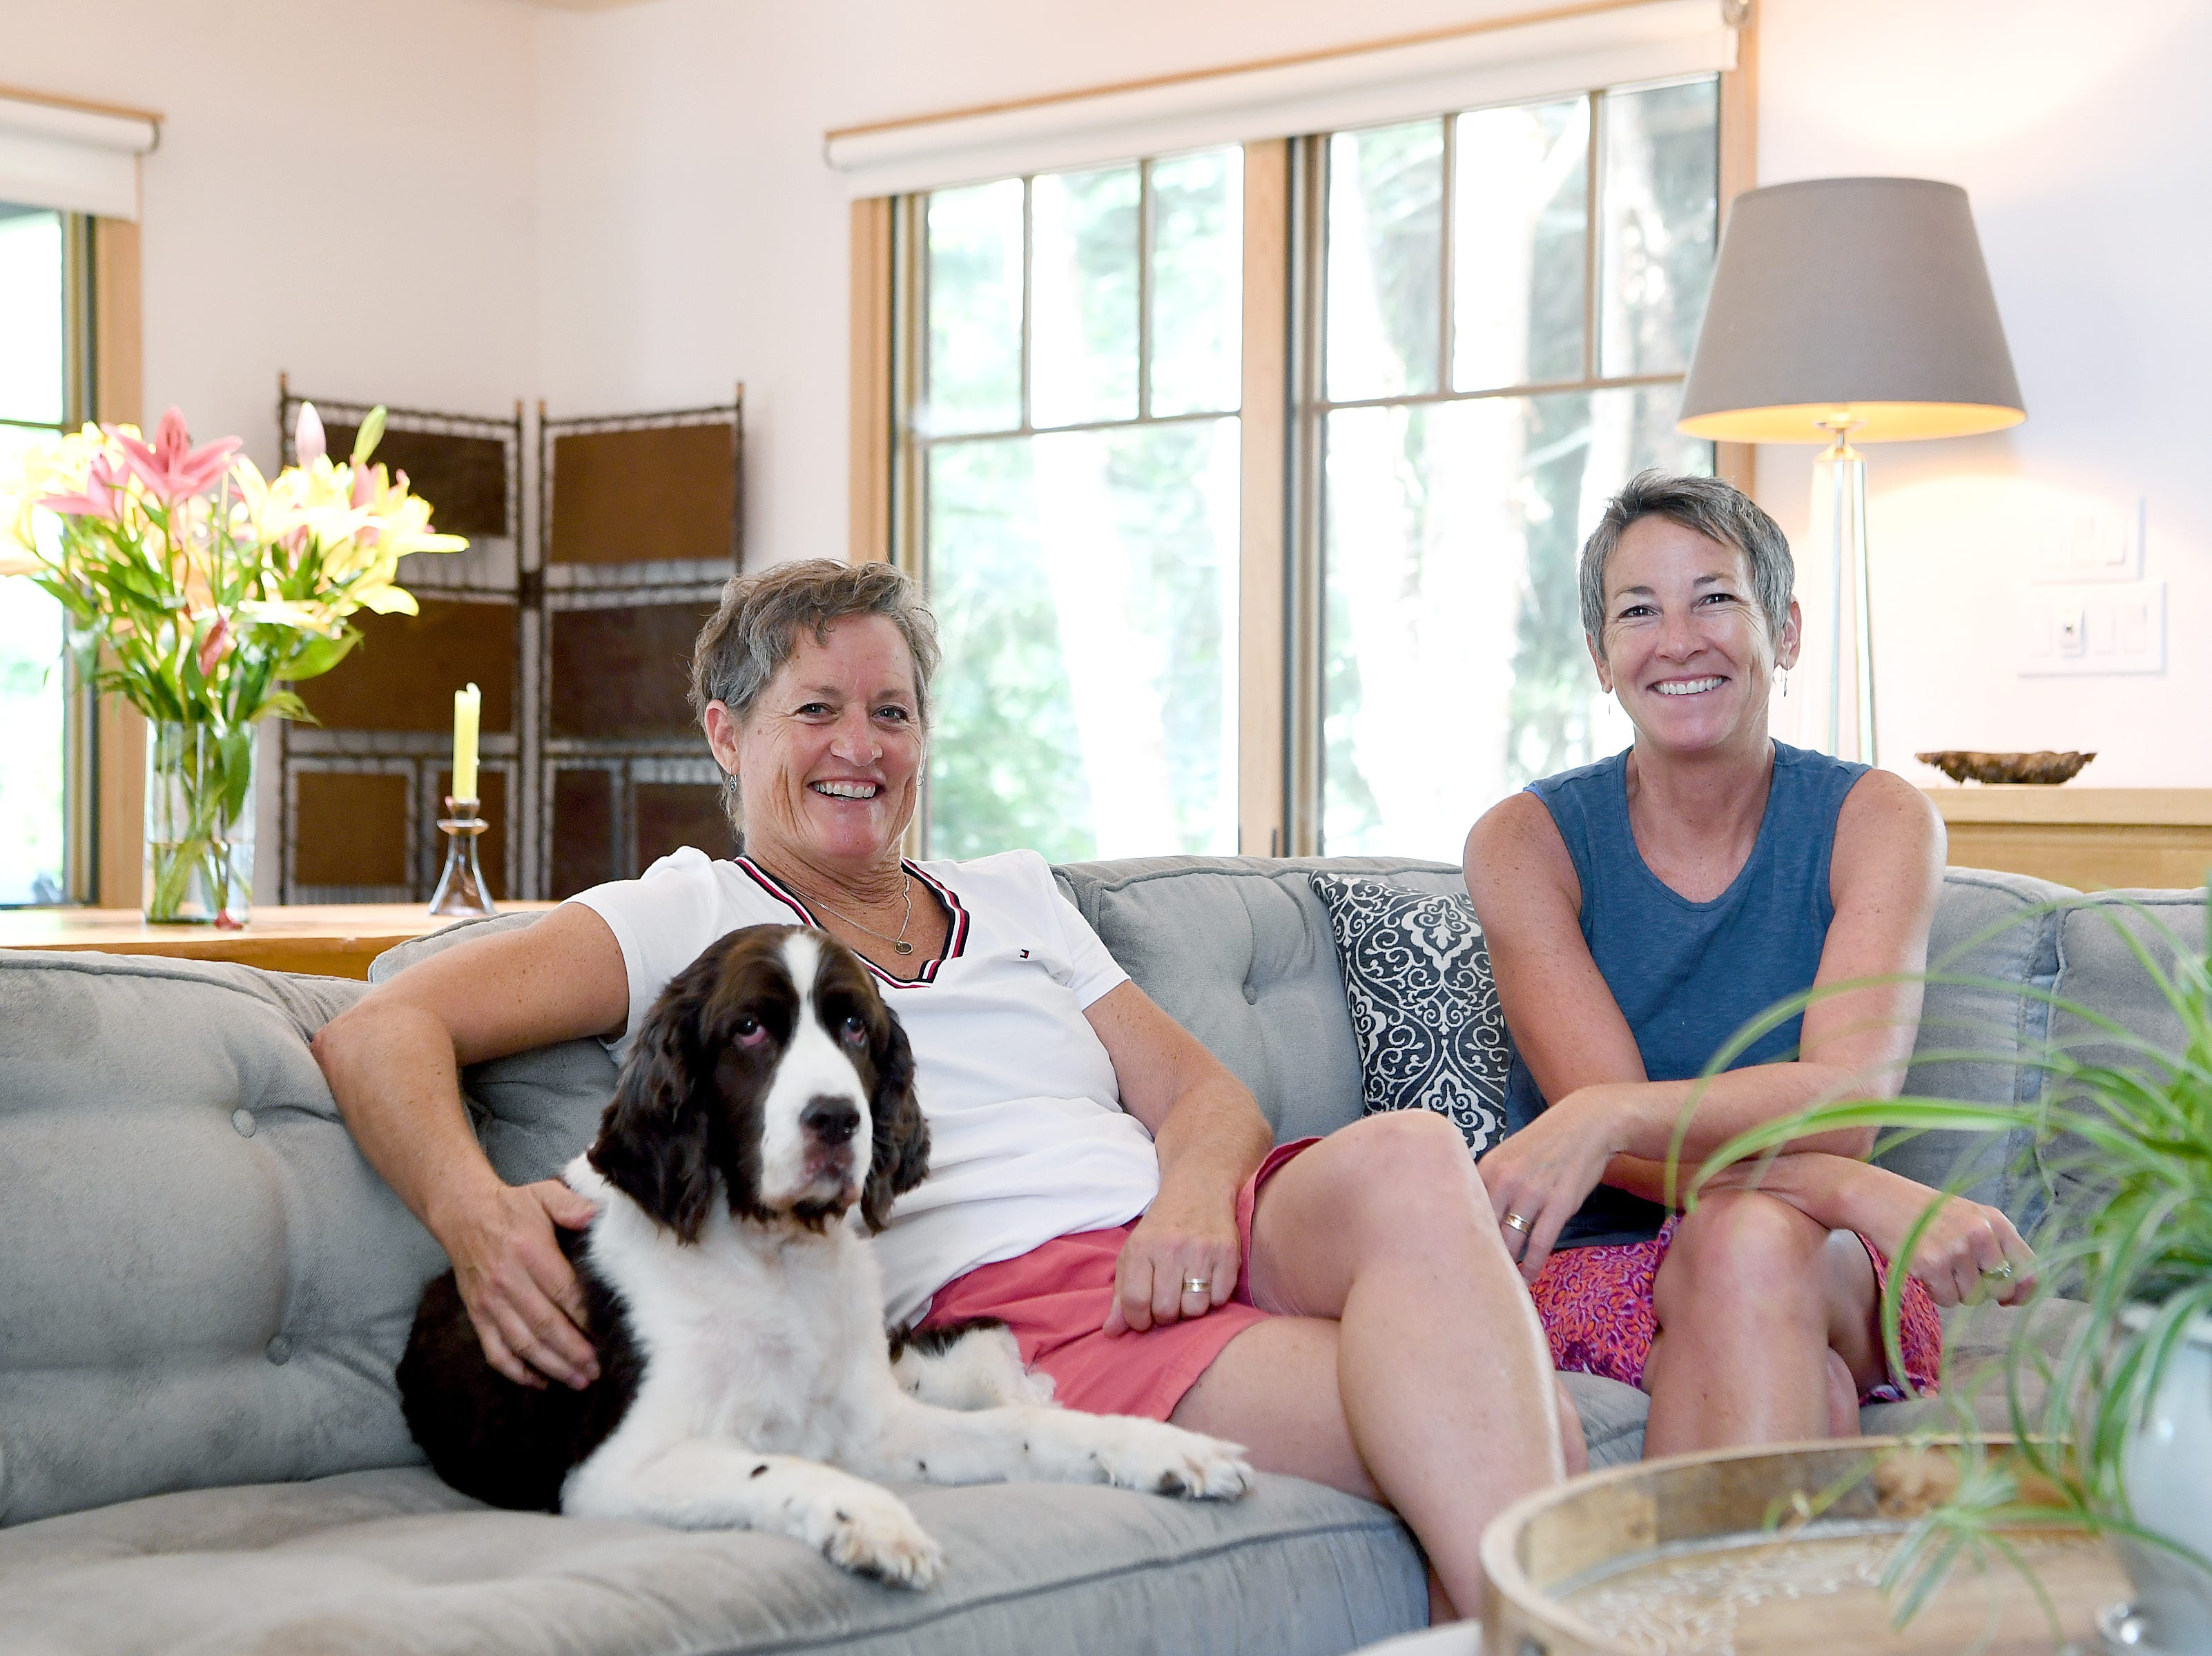 Mary Ann Myers, left, and Annie Lundahl pose with their English Springer Spaniel, Zach, inside their 1350 square-foot home that was once an apartment building in North Asheville. The couple renovated the building and moved in January of last year.